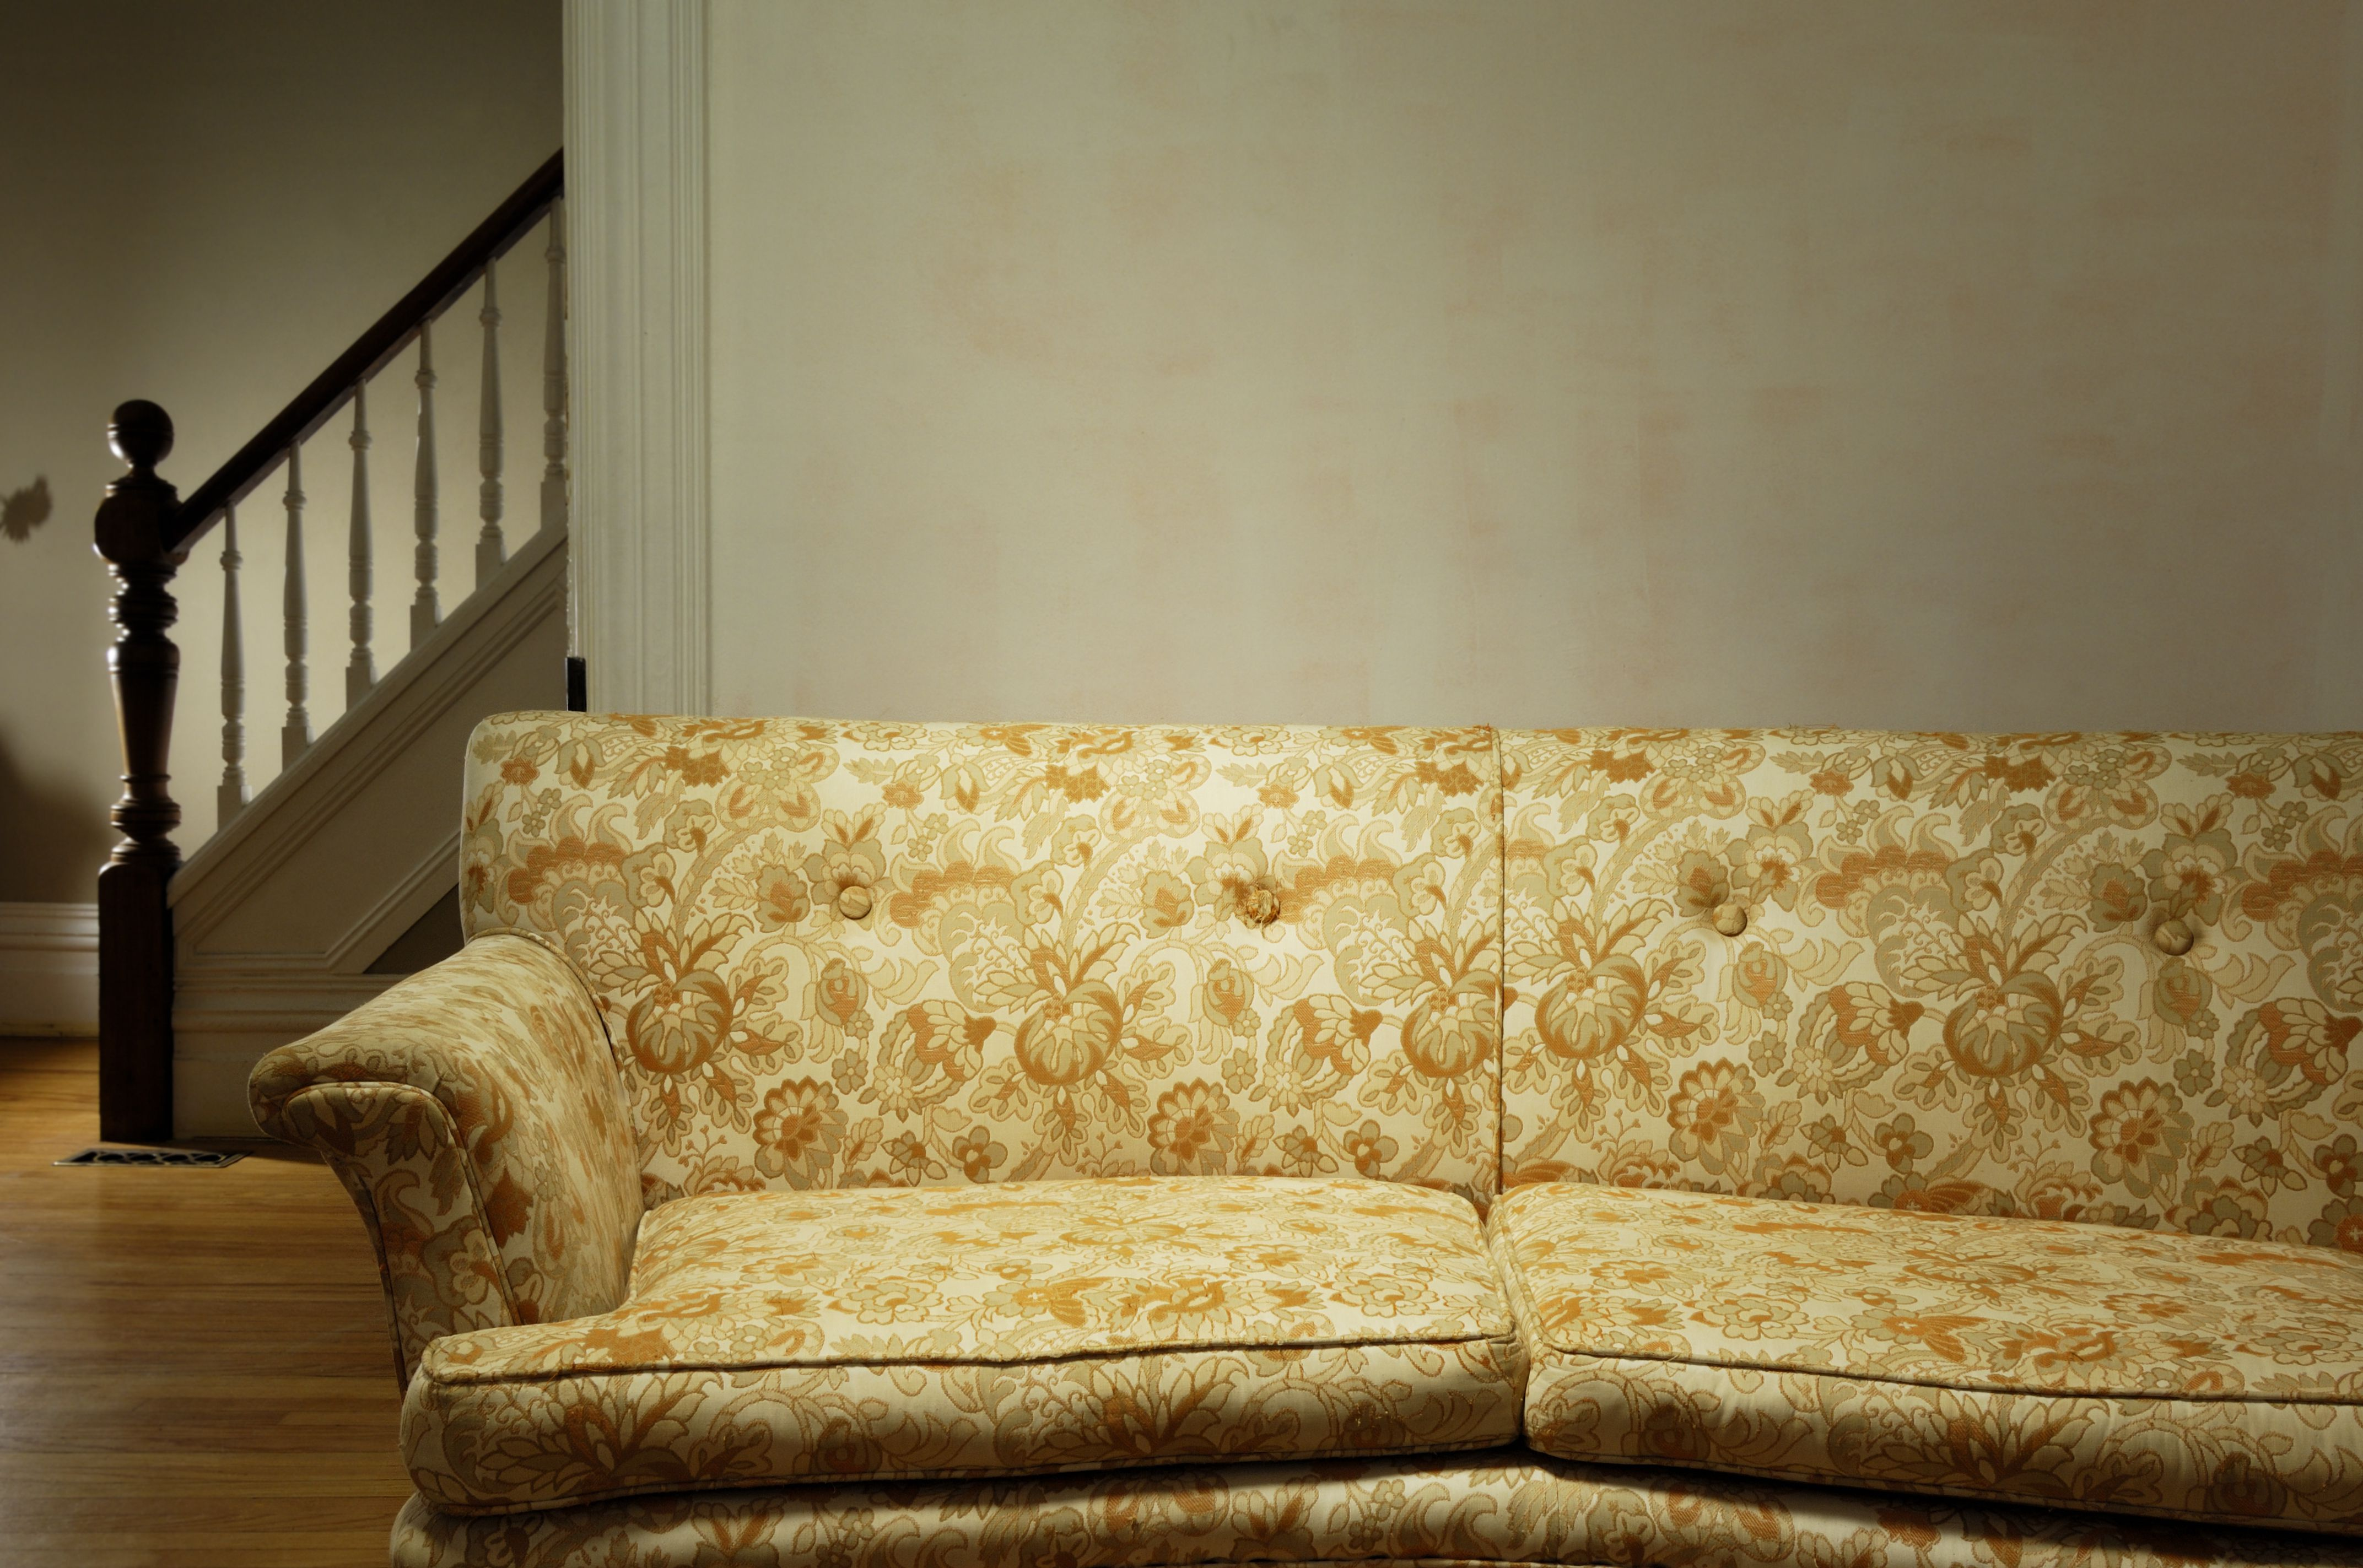 What To Do With A Used Sofa